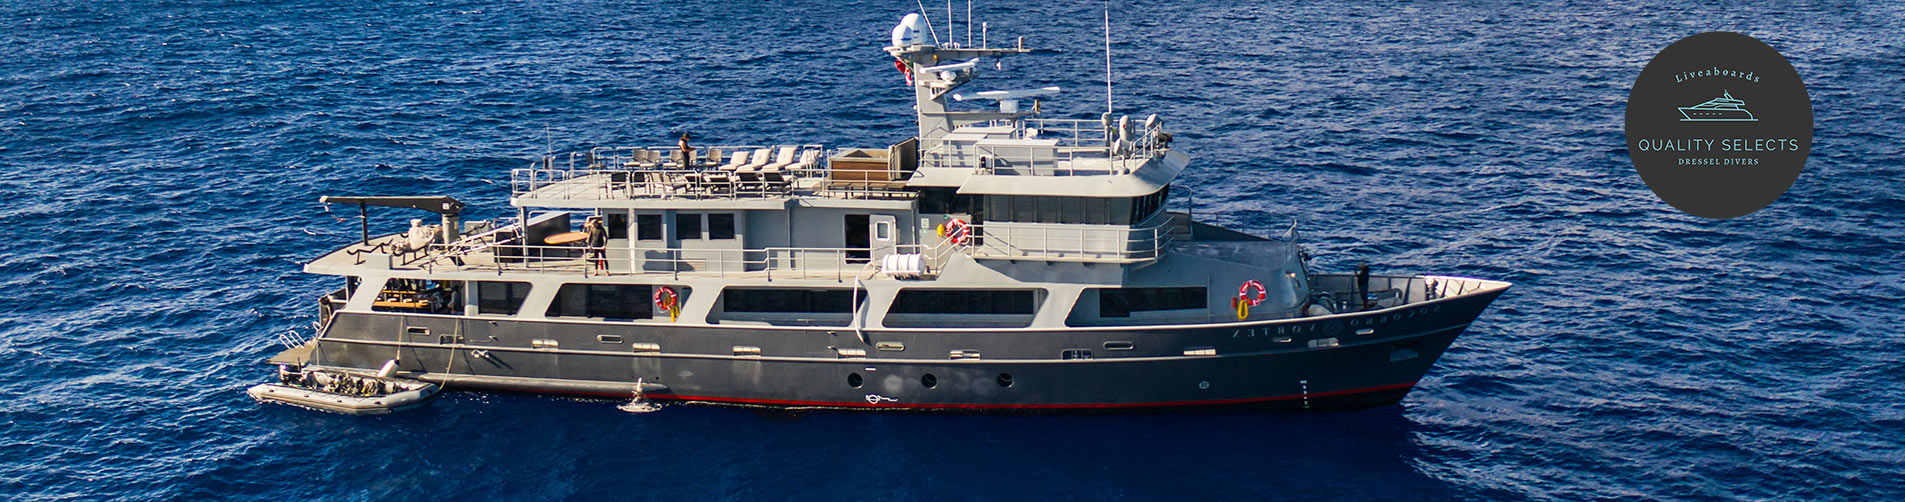 Guadalupe Liveaboard Diving - Vessel